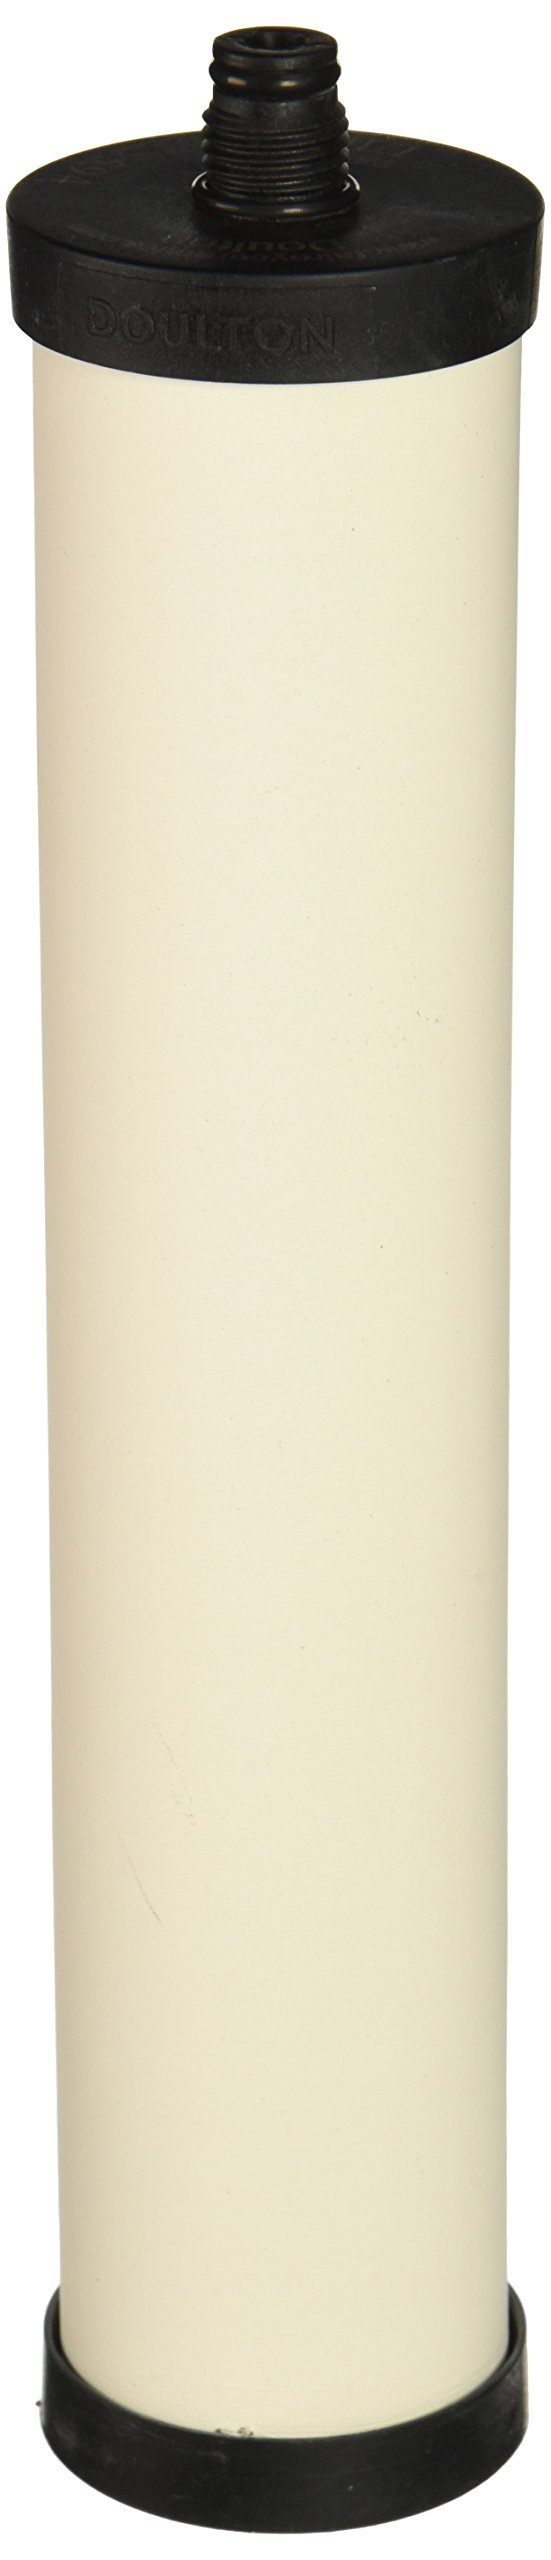 Doulton W9223021 UltraCarb M15 FRX02 Franke Filter